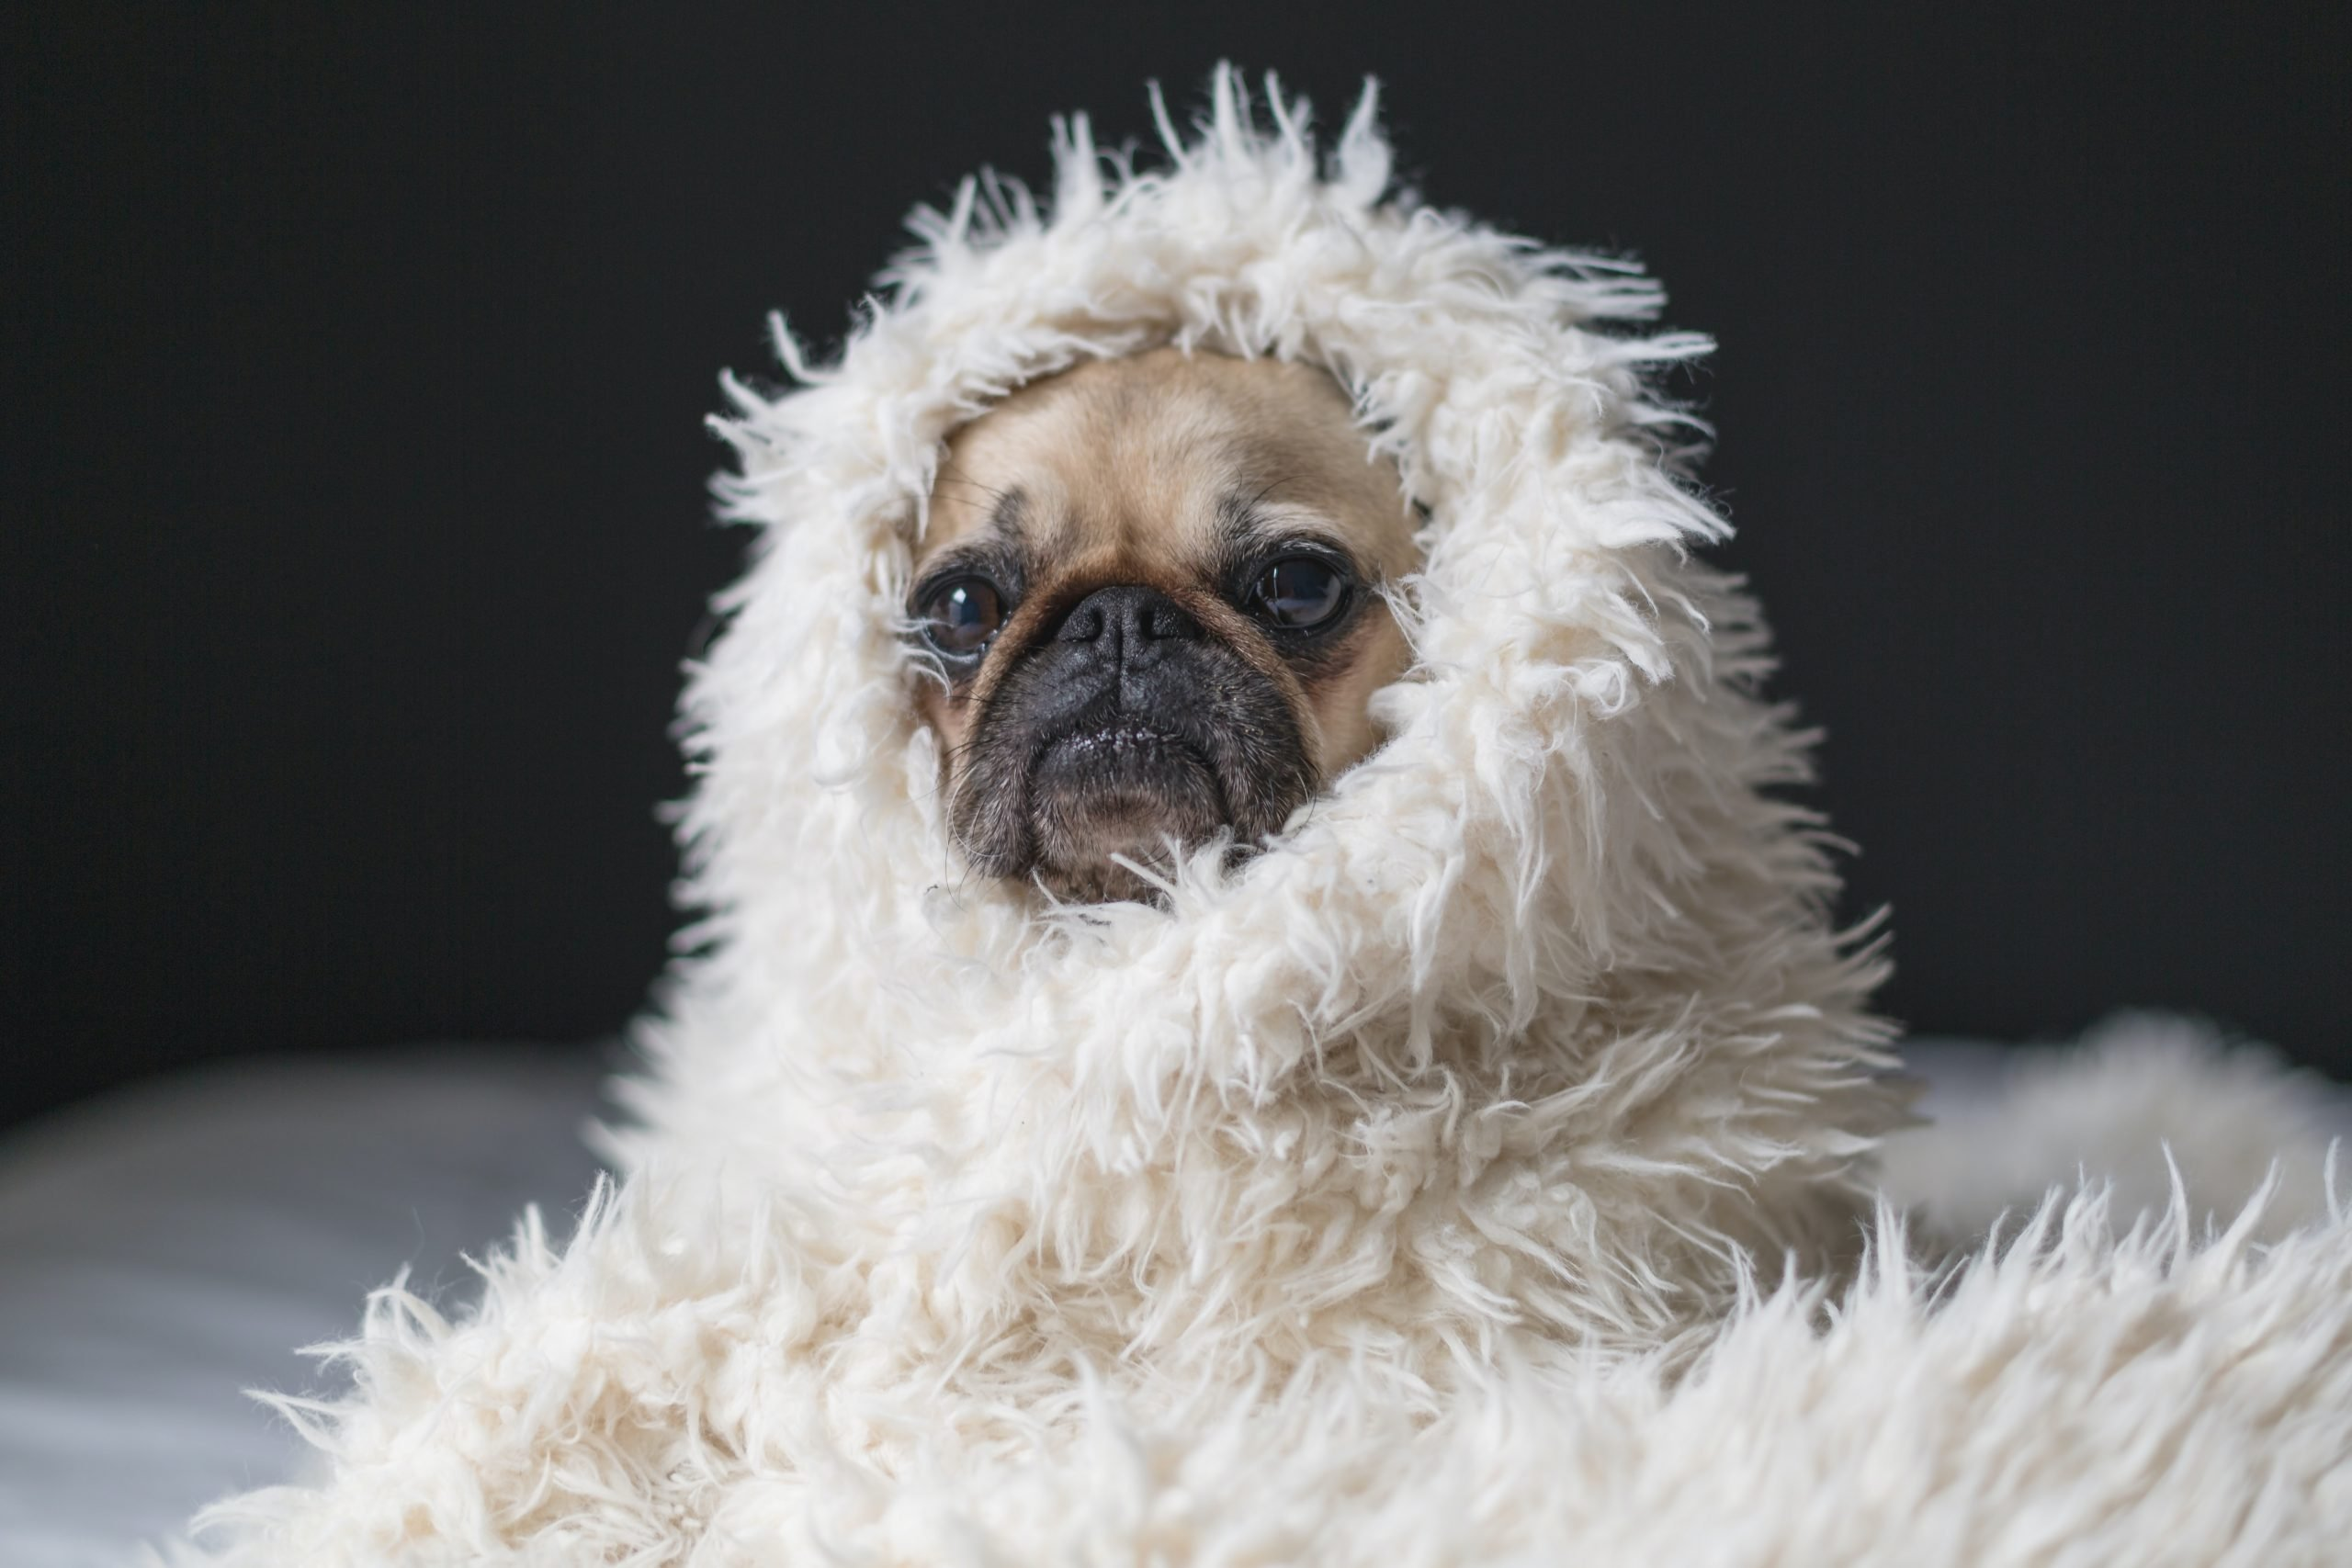 pug wrapped up in a furry white blanket